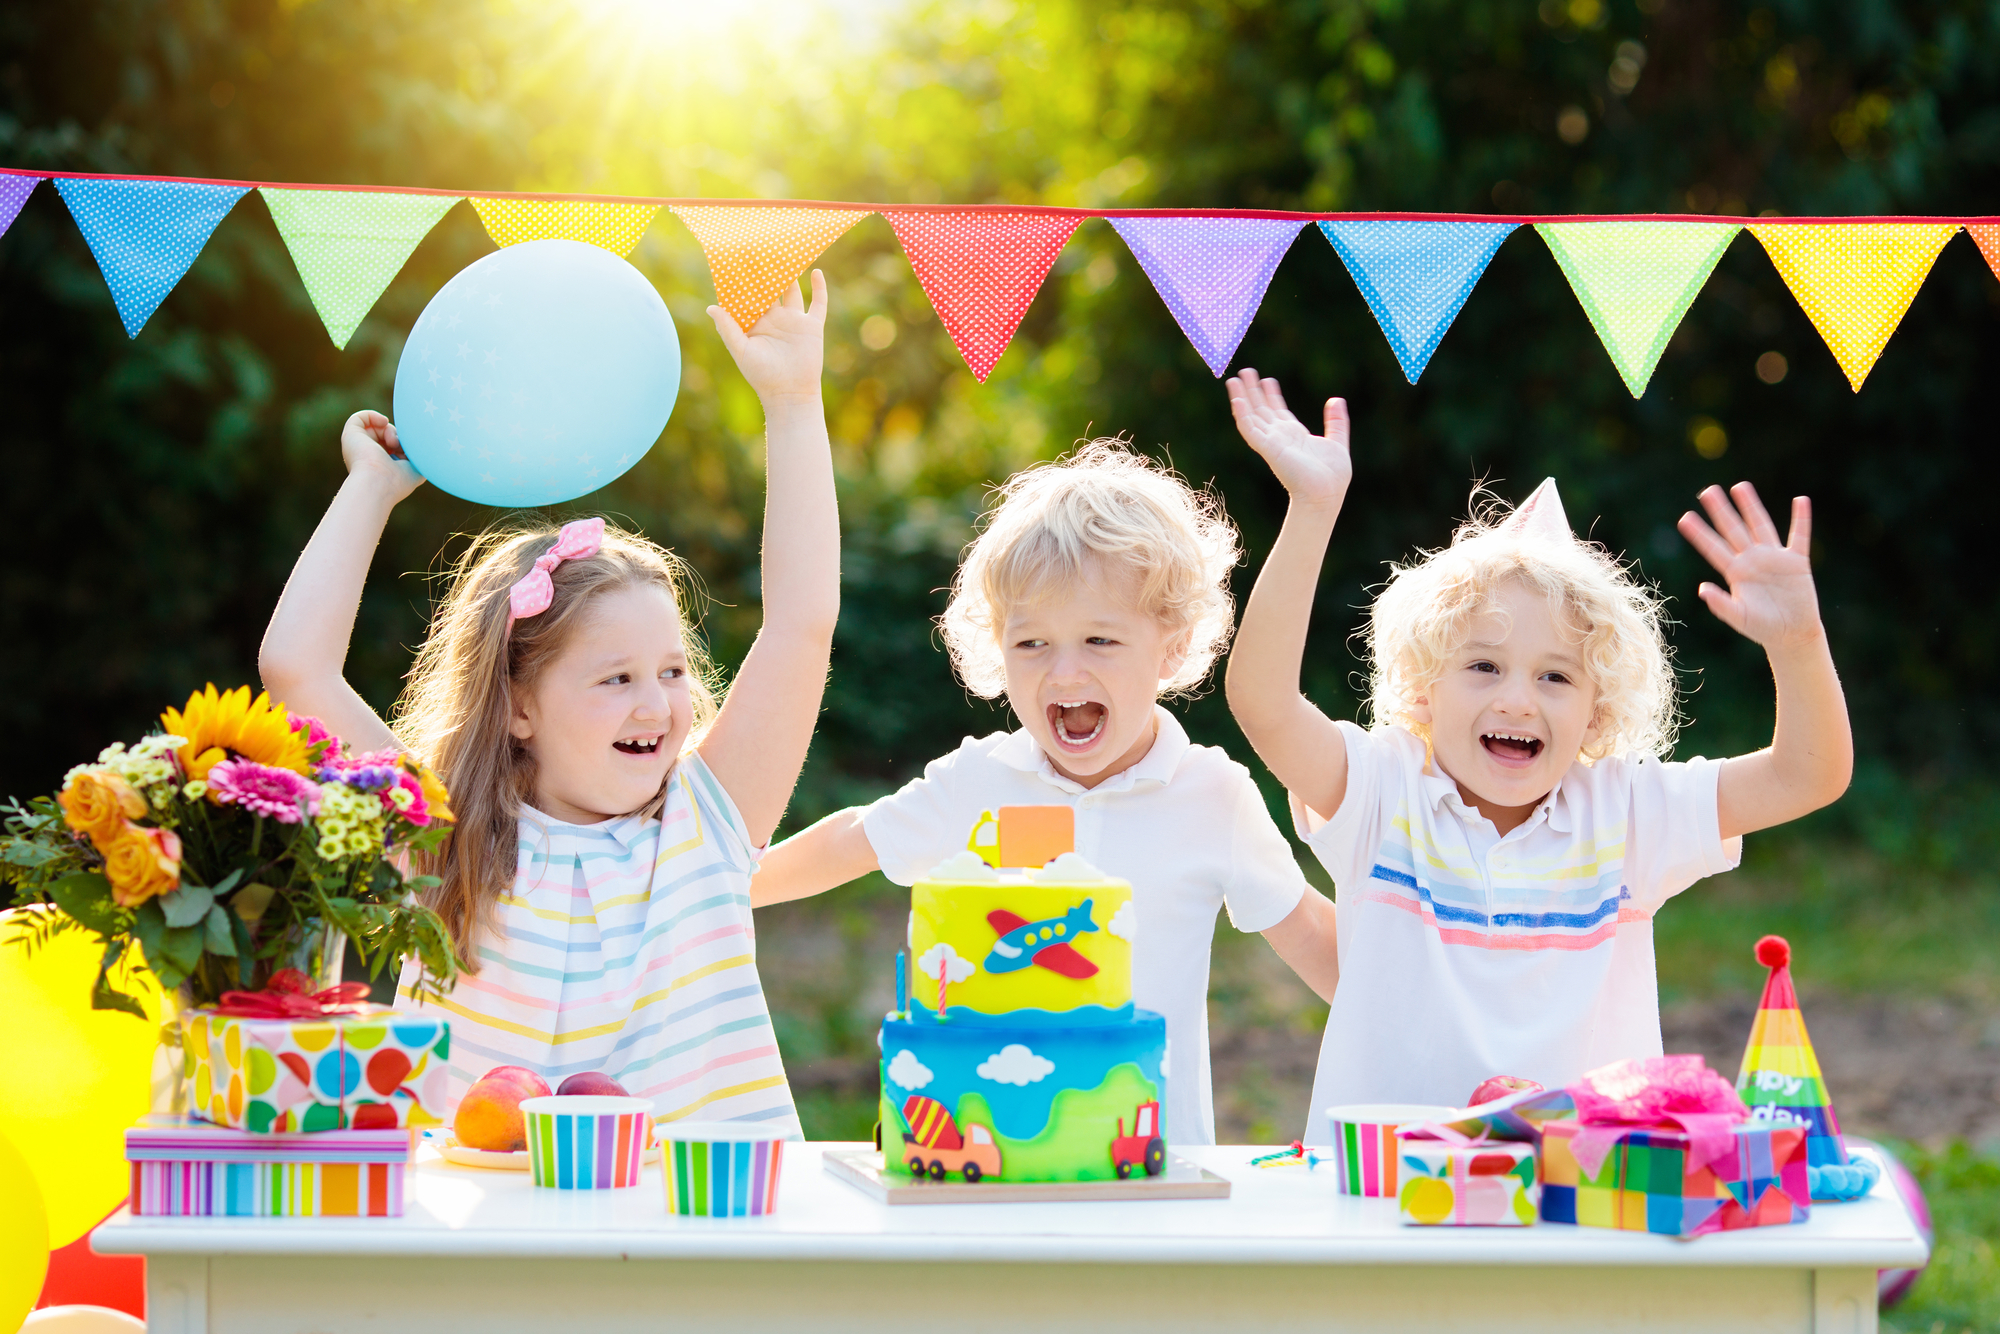 3 Fun Birthday Party Ideas For Young Children The Victors